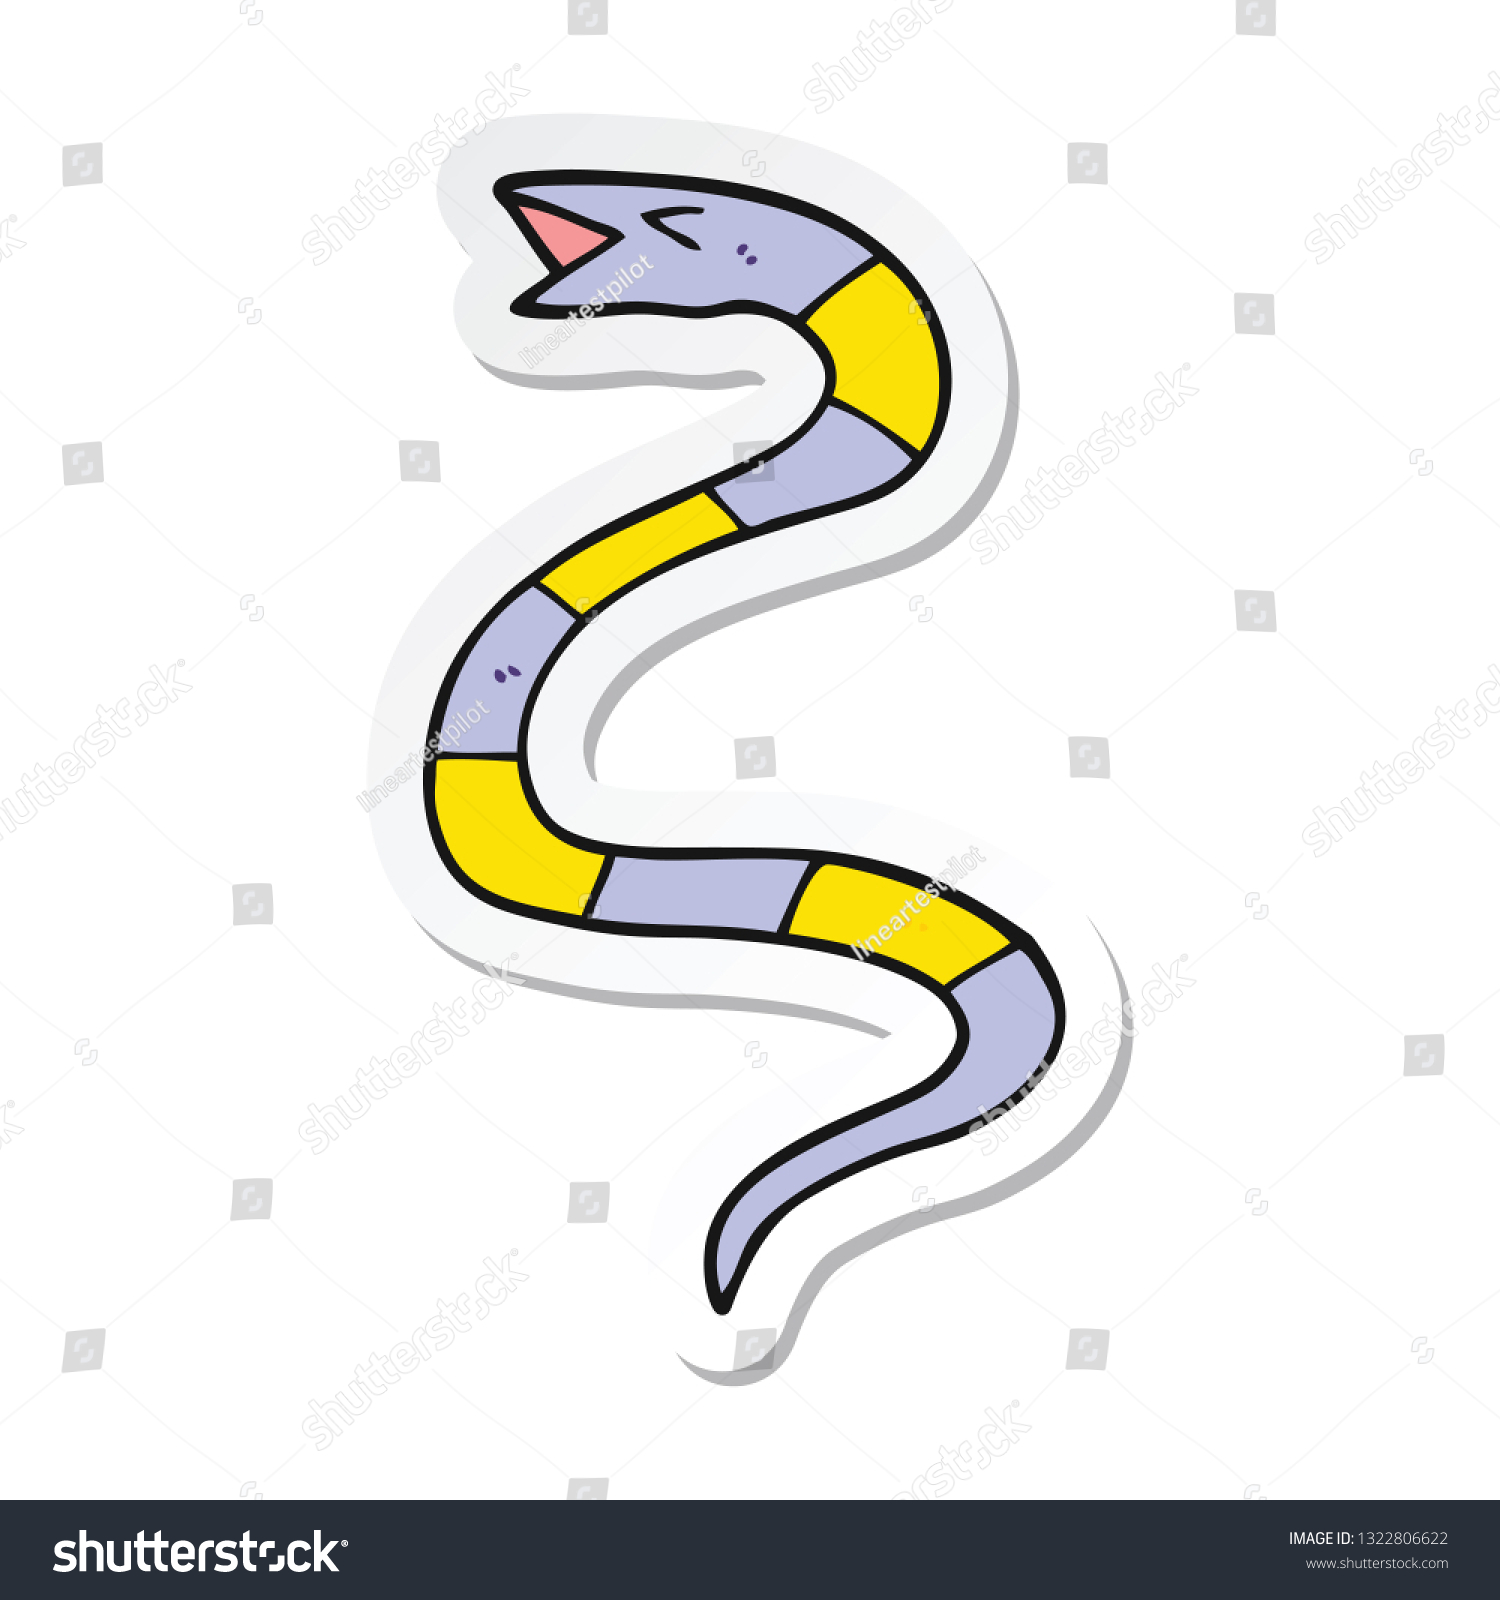 Sticker Cartoon Snake Stock Vector (Royalty Free) 1322806622